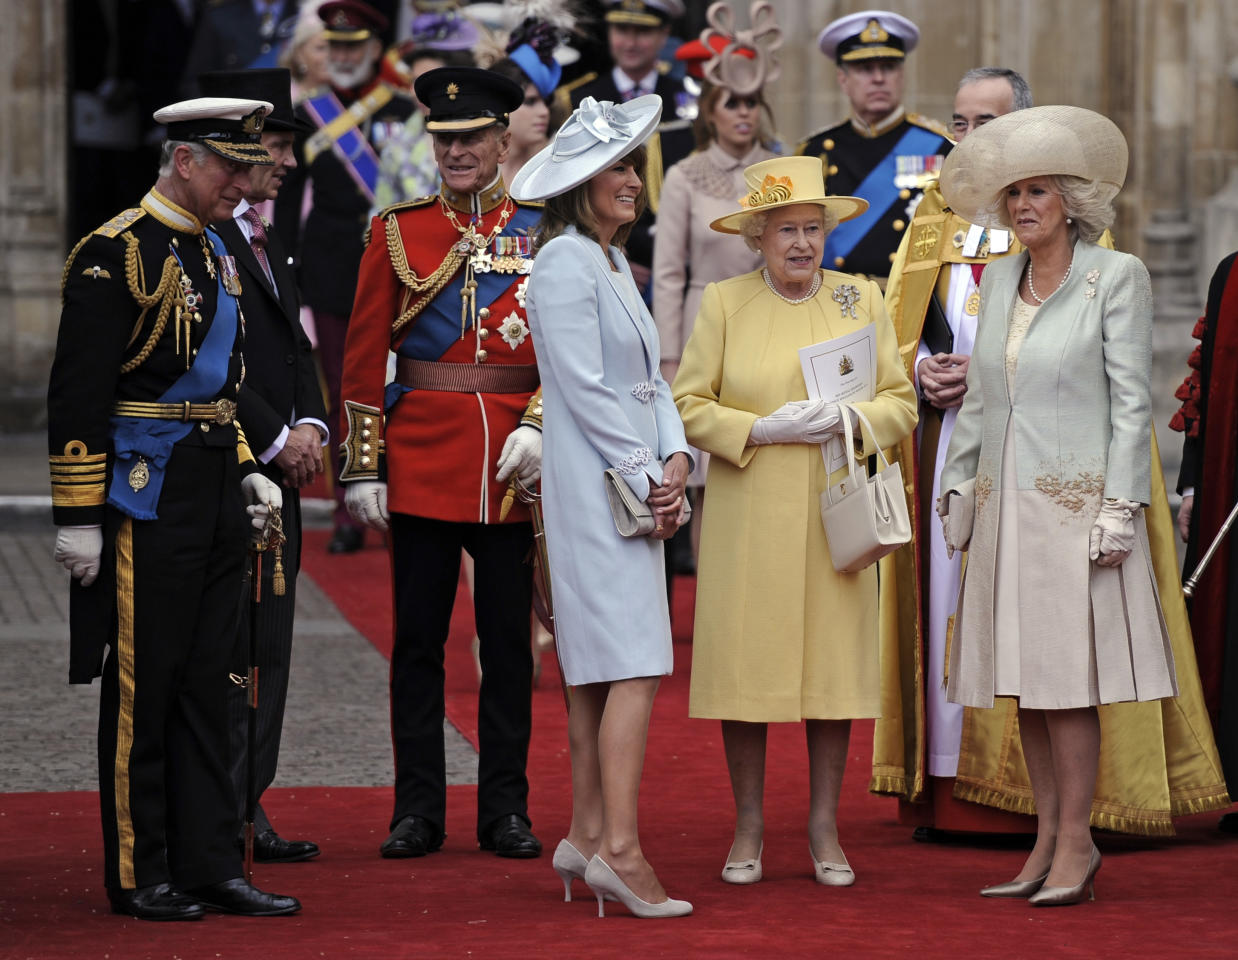 From left, Prince Charles, Prince Phillip, Carole Middleton, Britain's Queen Elizabeth II and Camilla, Duchess of Cornwall stand outside of Westminster Abbey after the Royal Wedding in London Friday, April, 29, 2011.